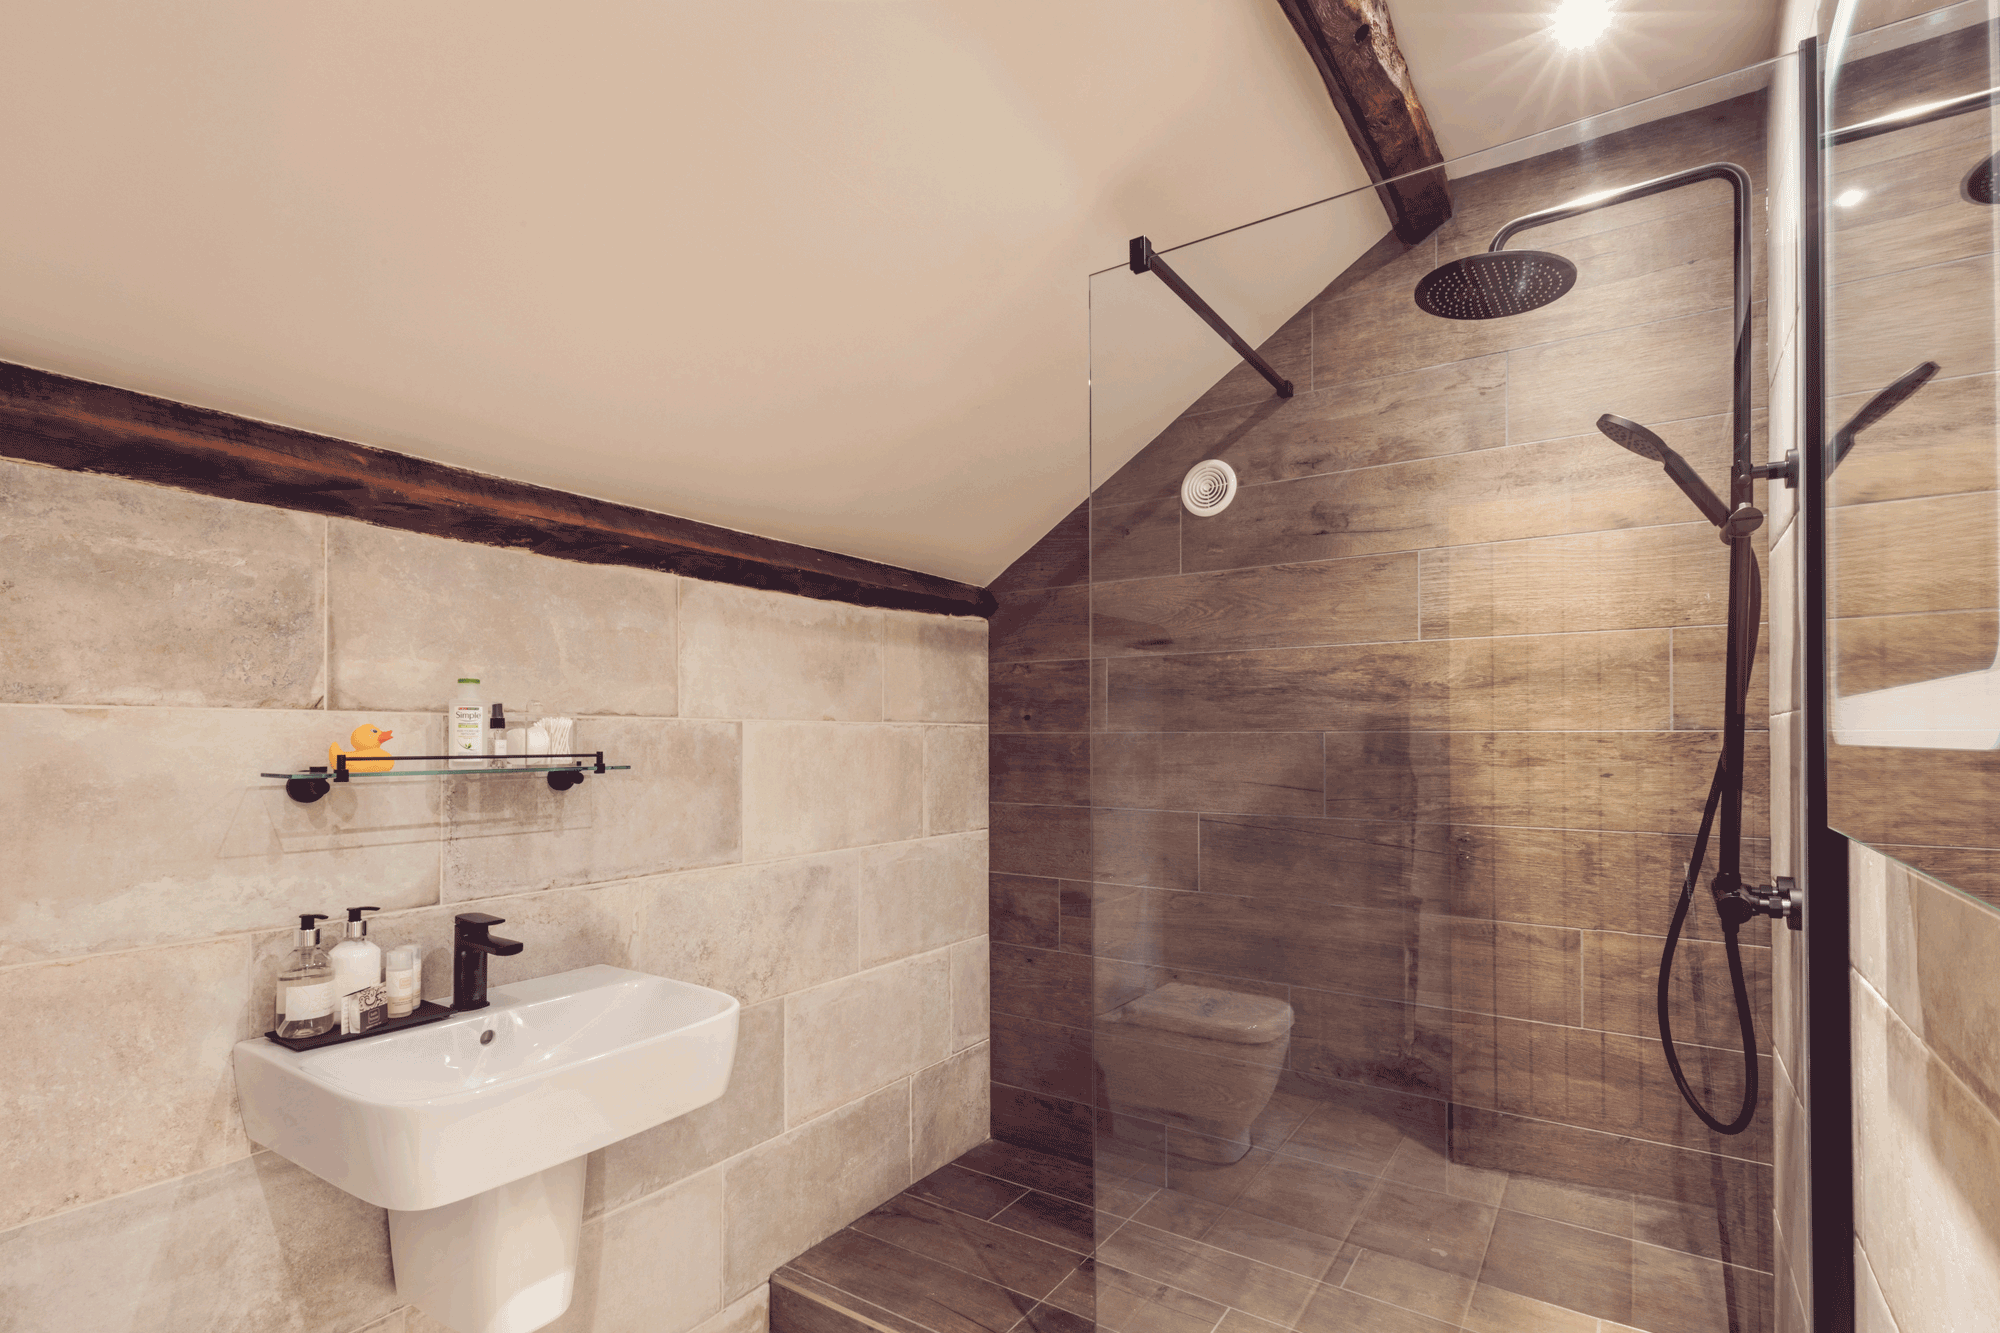 arge walk in shower, white sink, pale grey tiles and an oak beam